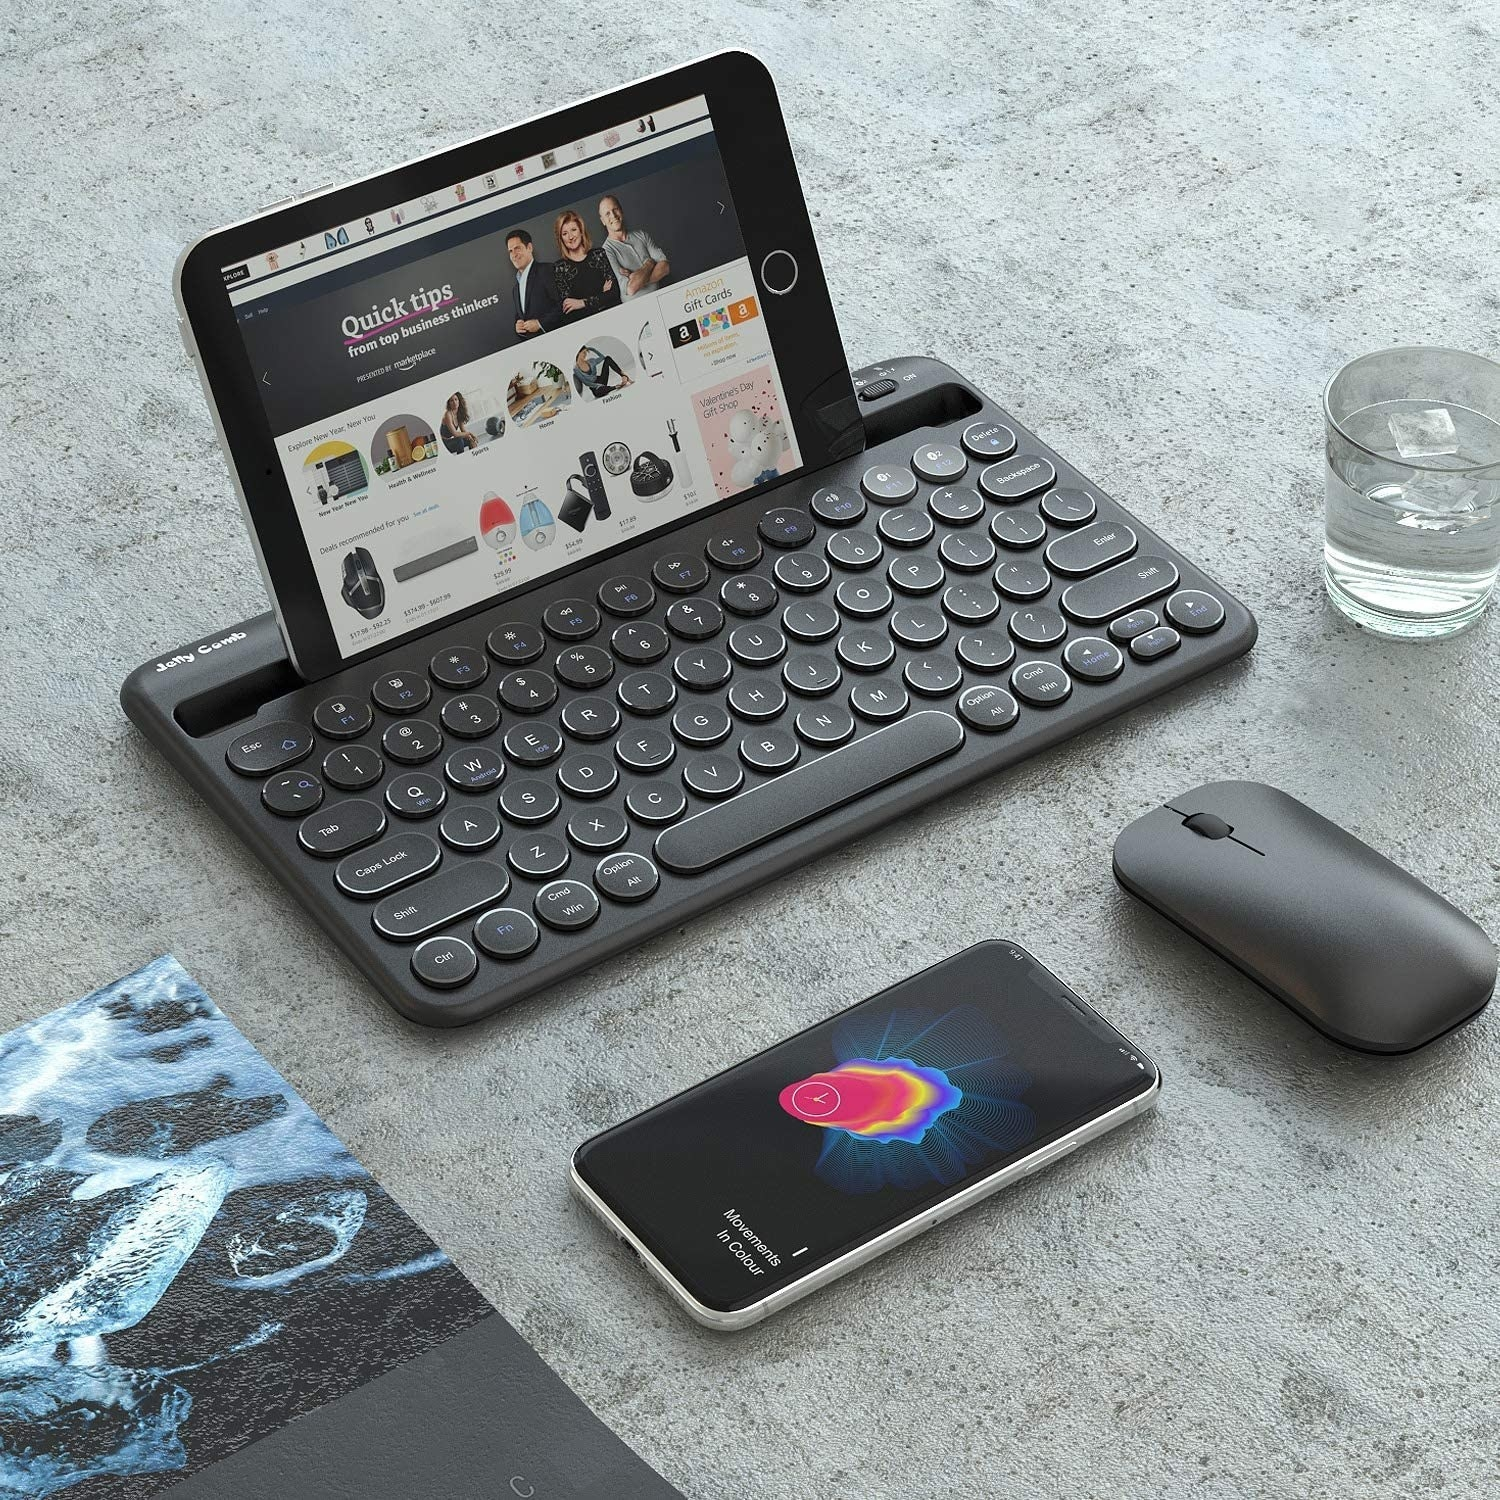 The Bluetooth keyboard with a tablet in the slot